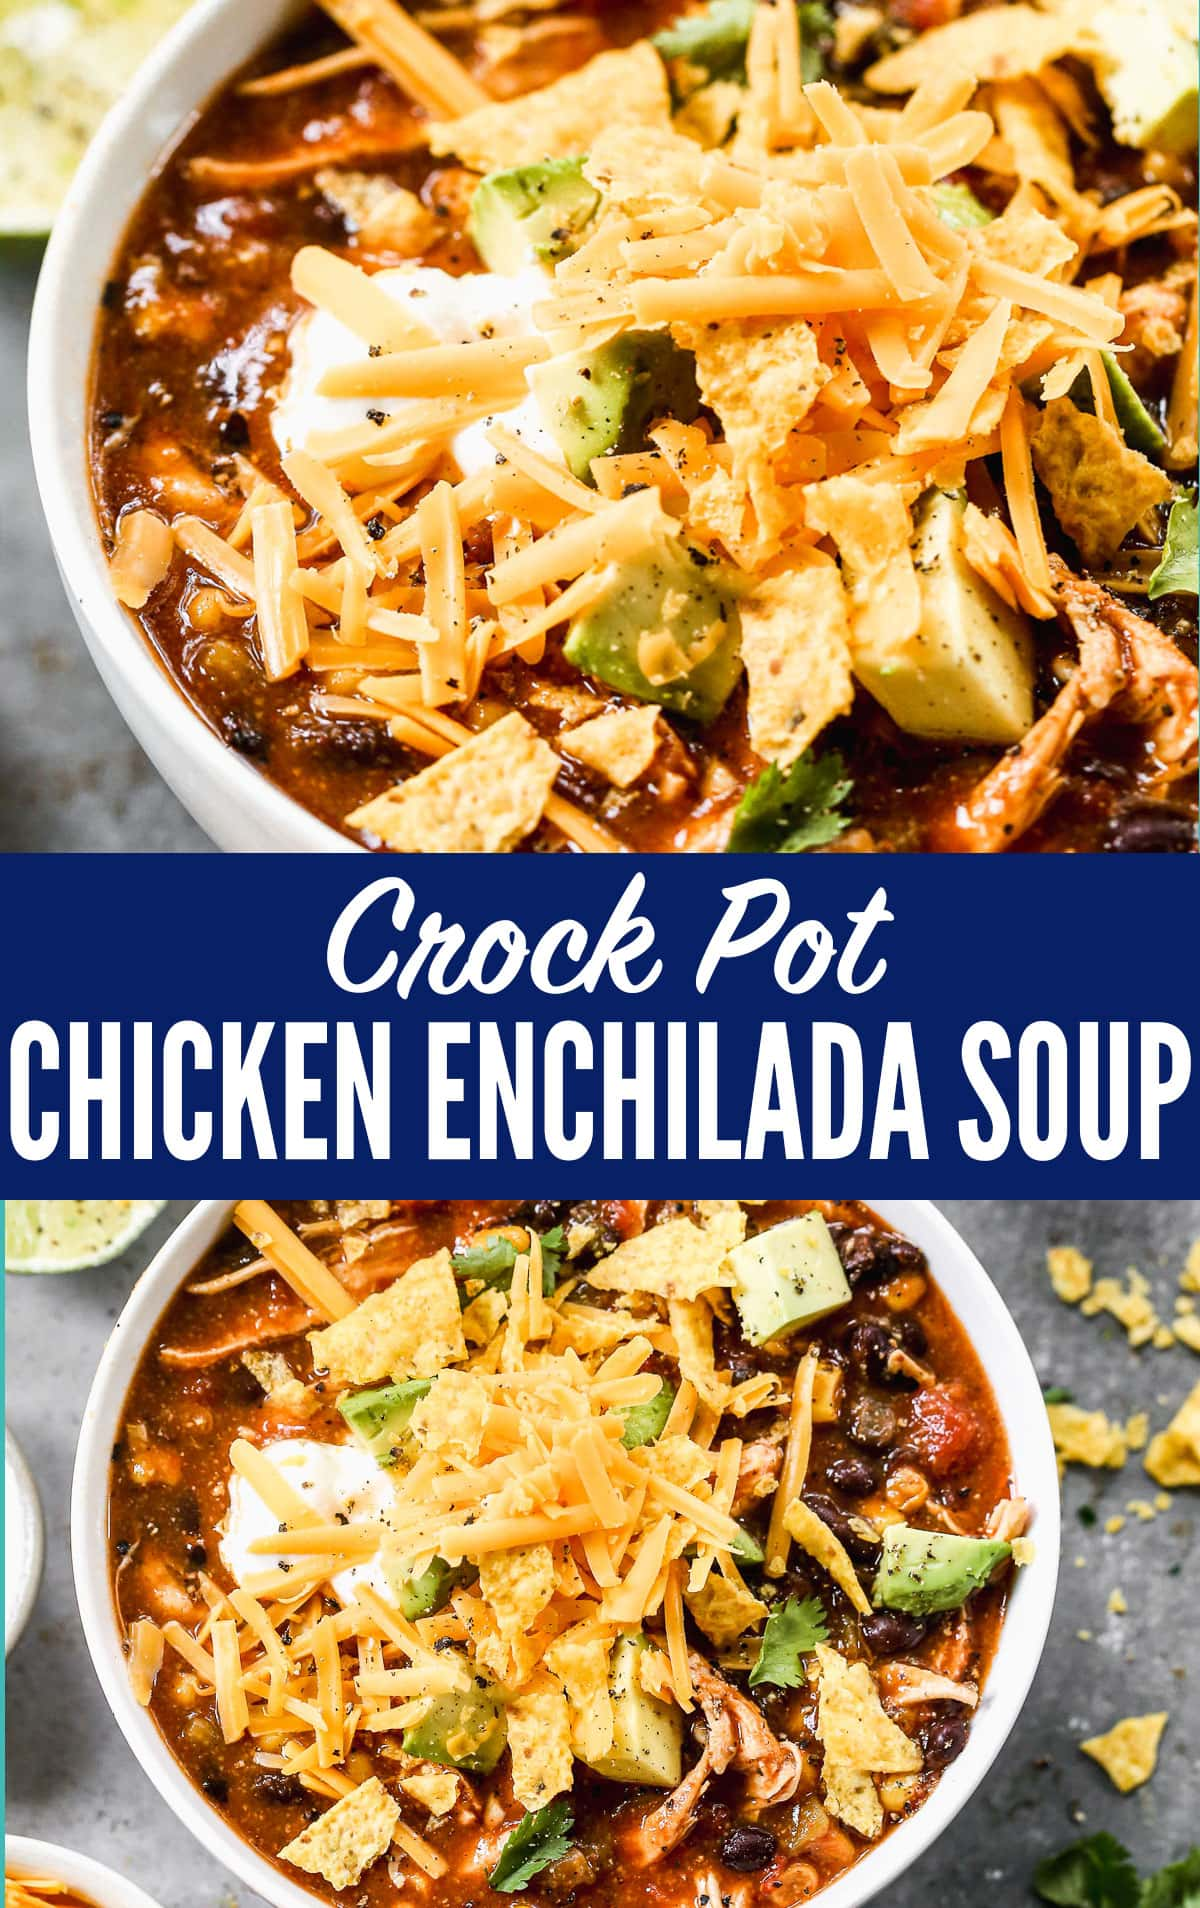 This slow cooker chicken enchilada soup recipe is easy, cheesy, and healthy too! One of mybest crock pot recipesfor an easy Mexican meal, that takes only 10 minutes to prep! #slowcooker #crockpot #soup #Mexicanrecipes #chicken